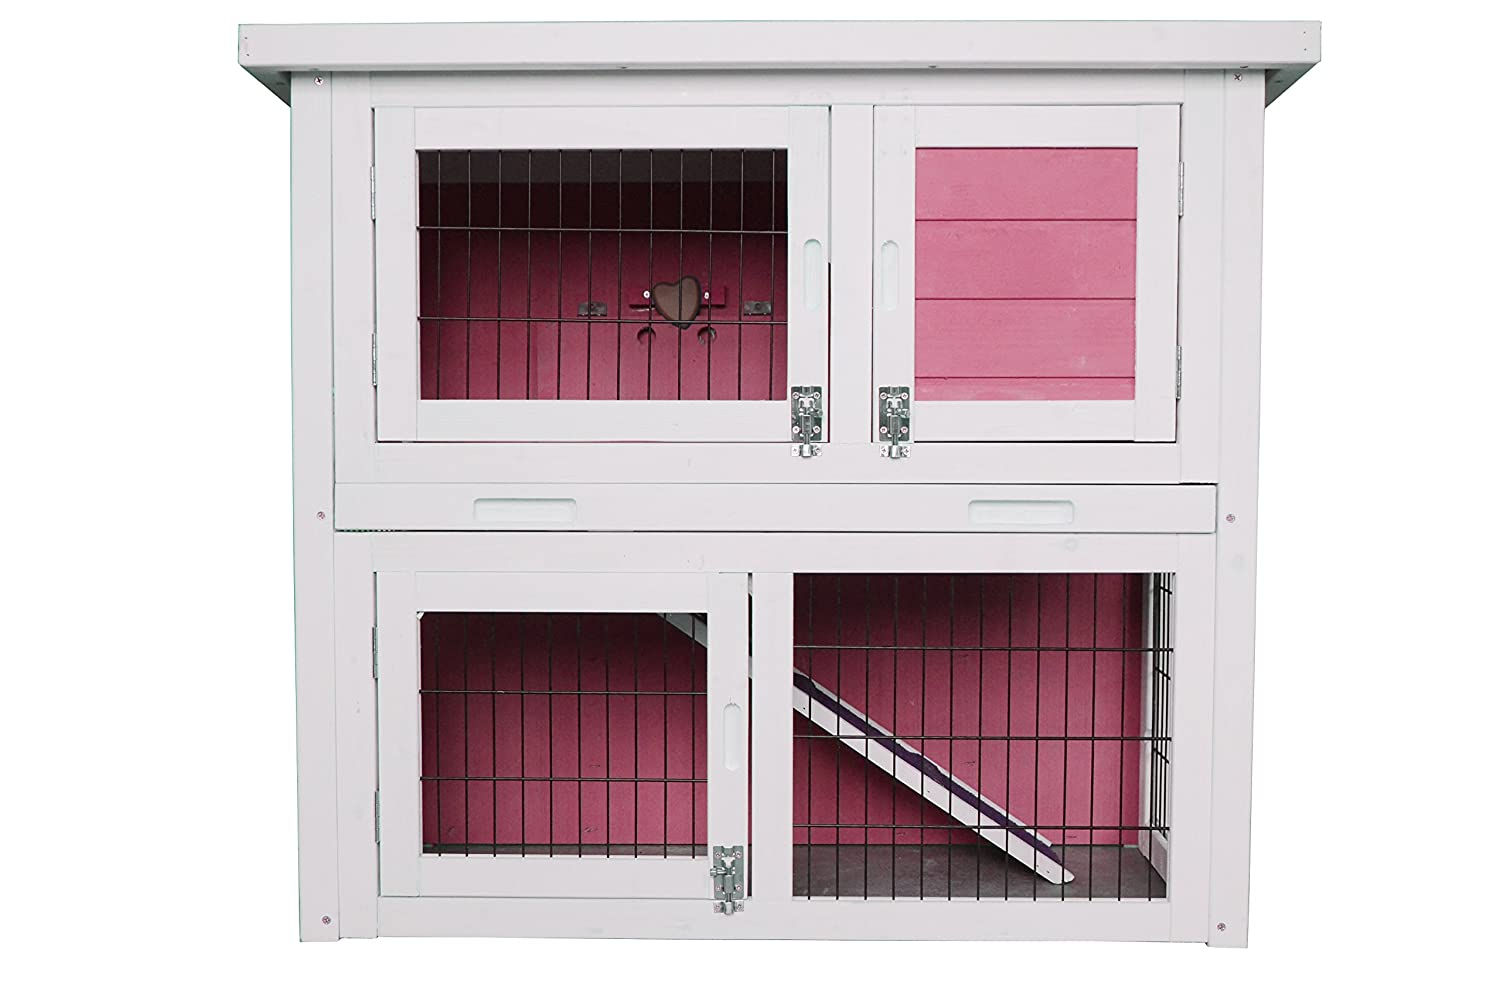 MCombo 0323S Wooden Rabbit Hutch Small Animal House/Pet Cage/Chicken Coop, 32, Pink 32 6010-0323SP